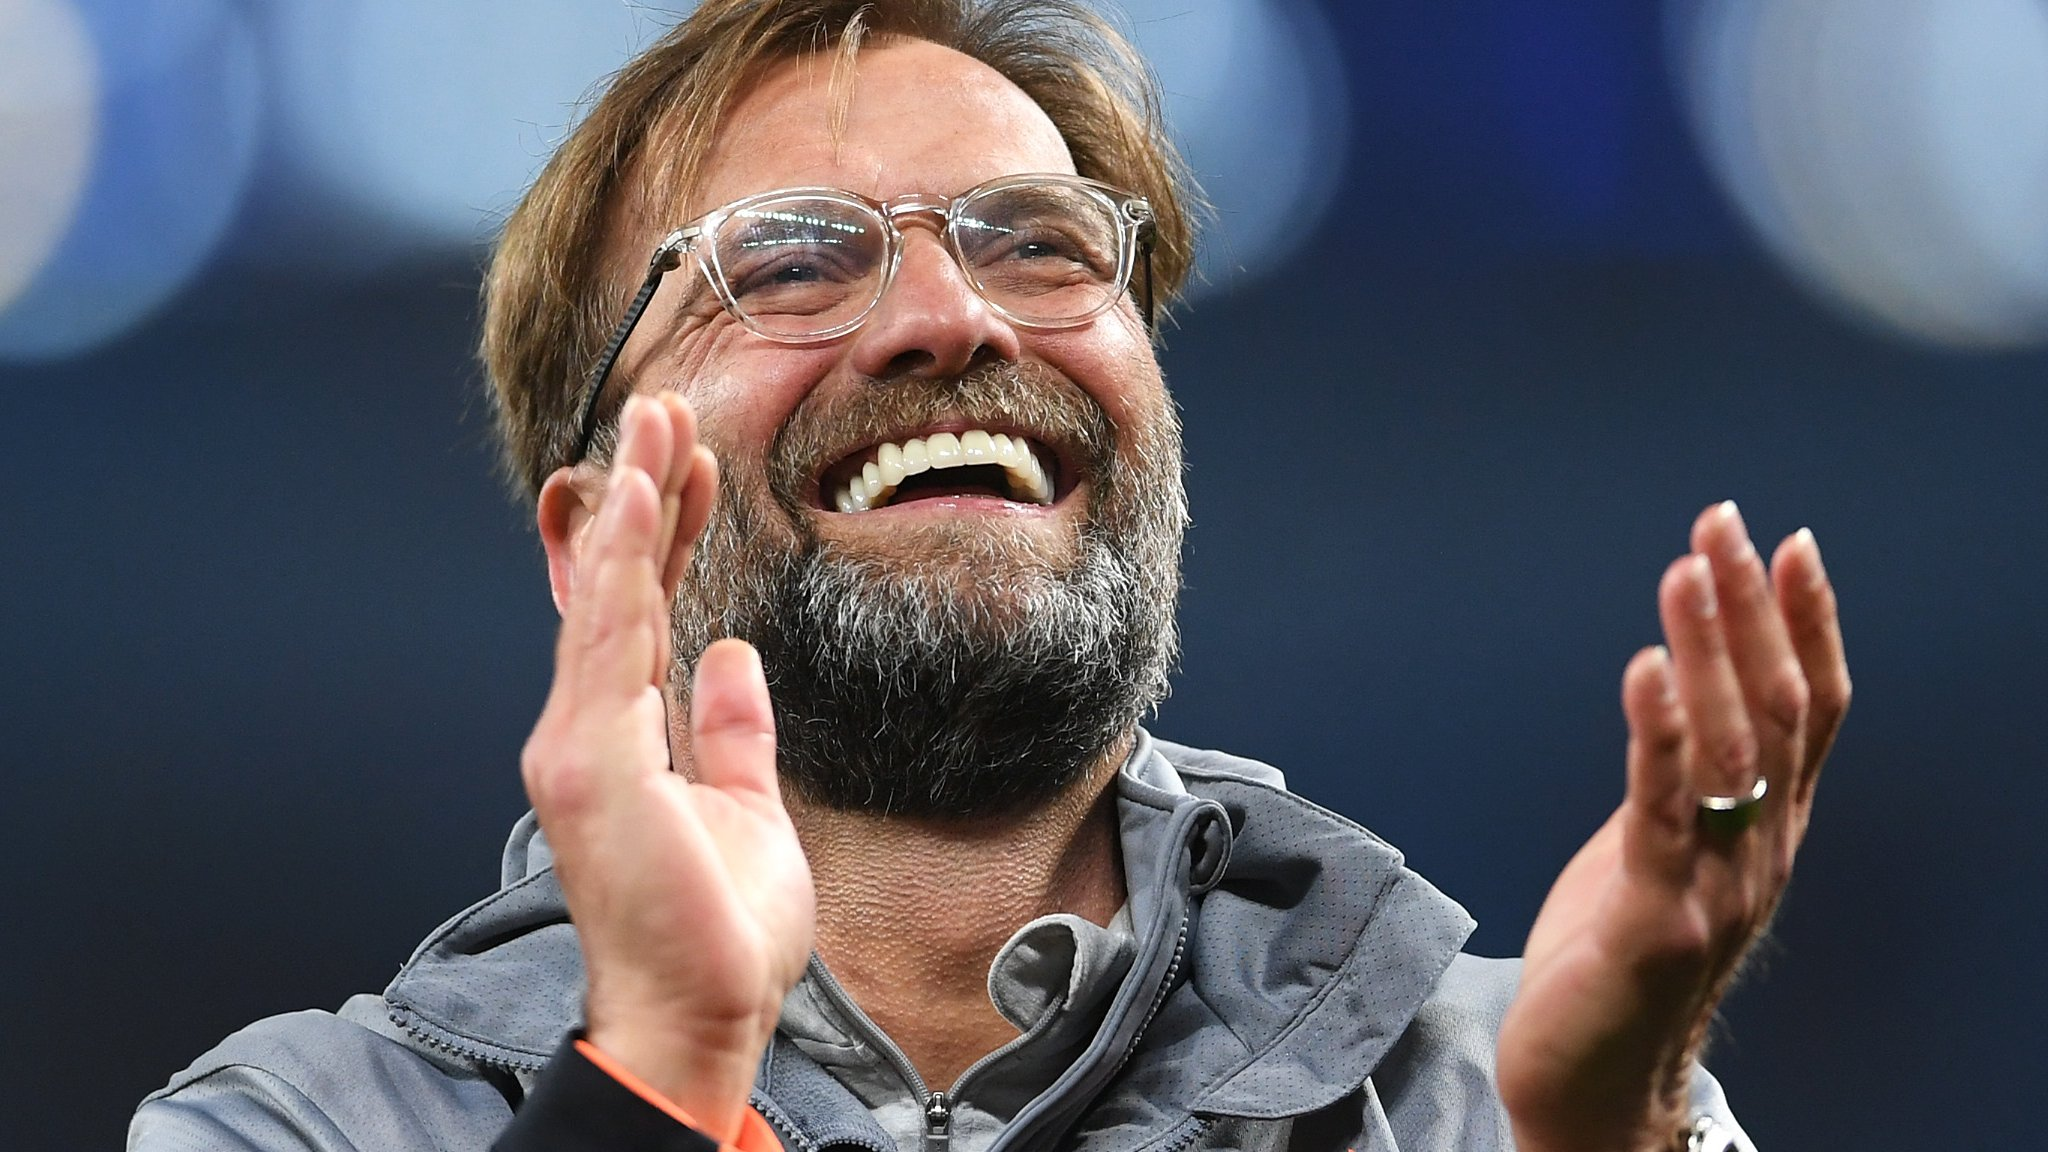 A demanding father, a radical coach, a lot of belief - the making of the Liverpool manager